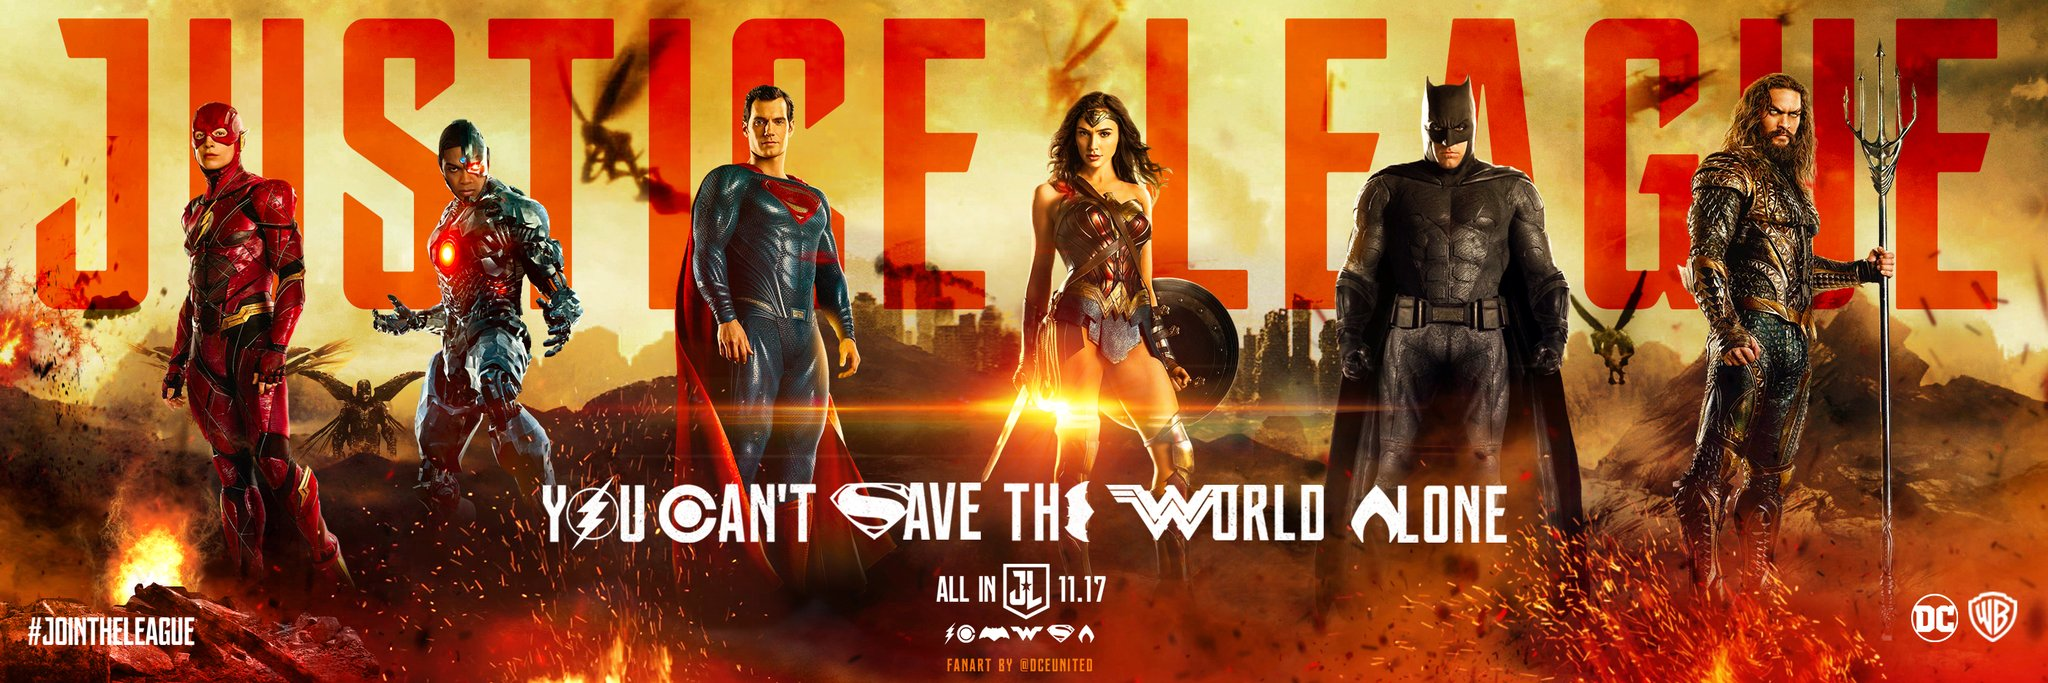 This Fan-Made Justice League Banner Is Better Than The Official One